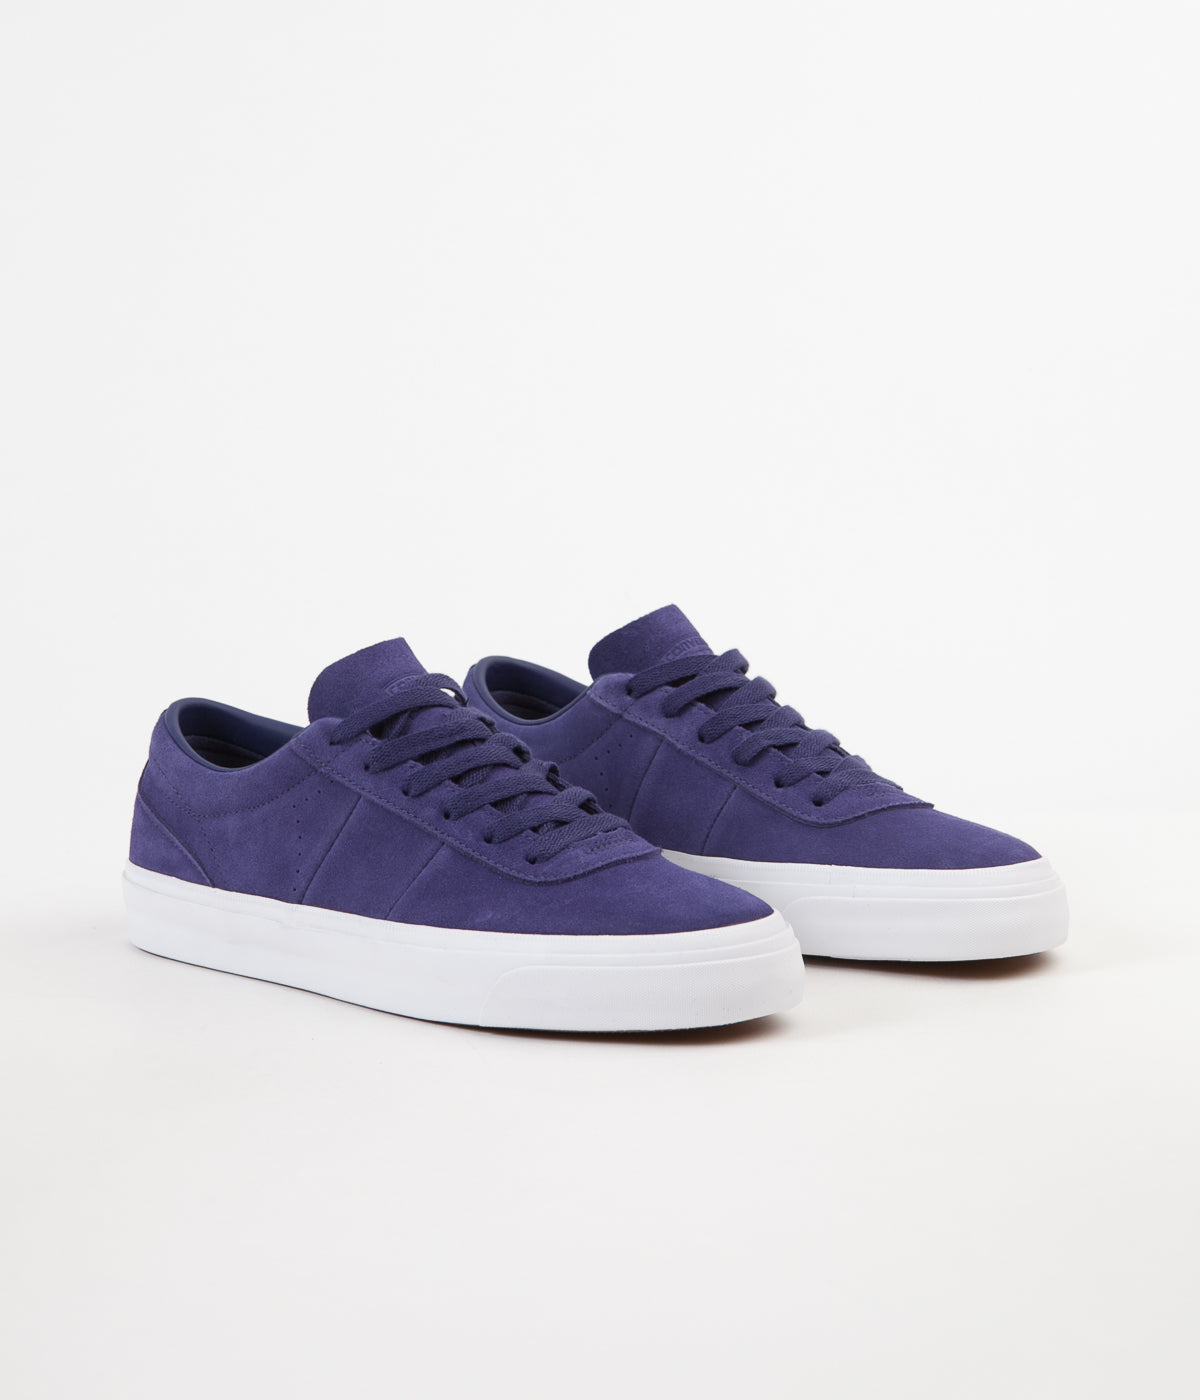 newest 59ad0 83279 ... coupon for converse one star cc pro ox purple pack shoes japanese fc2a7  336d5